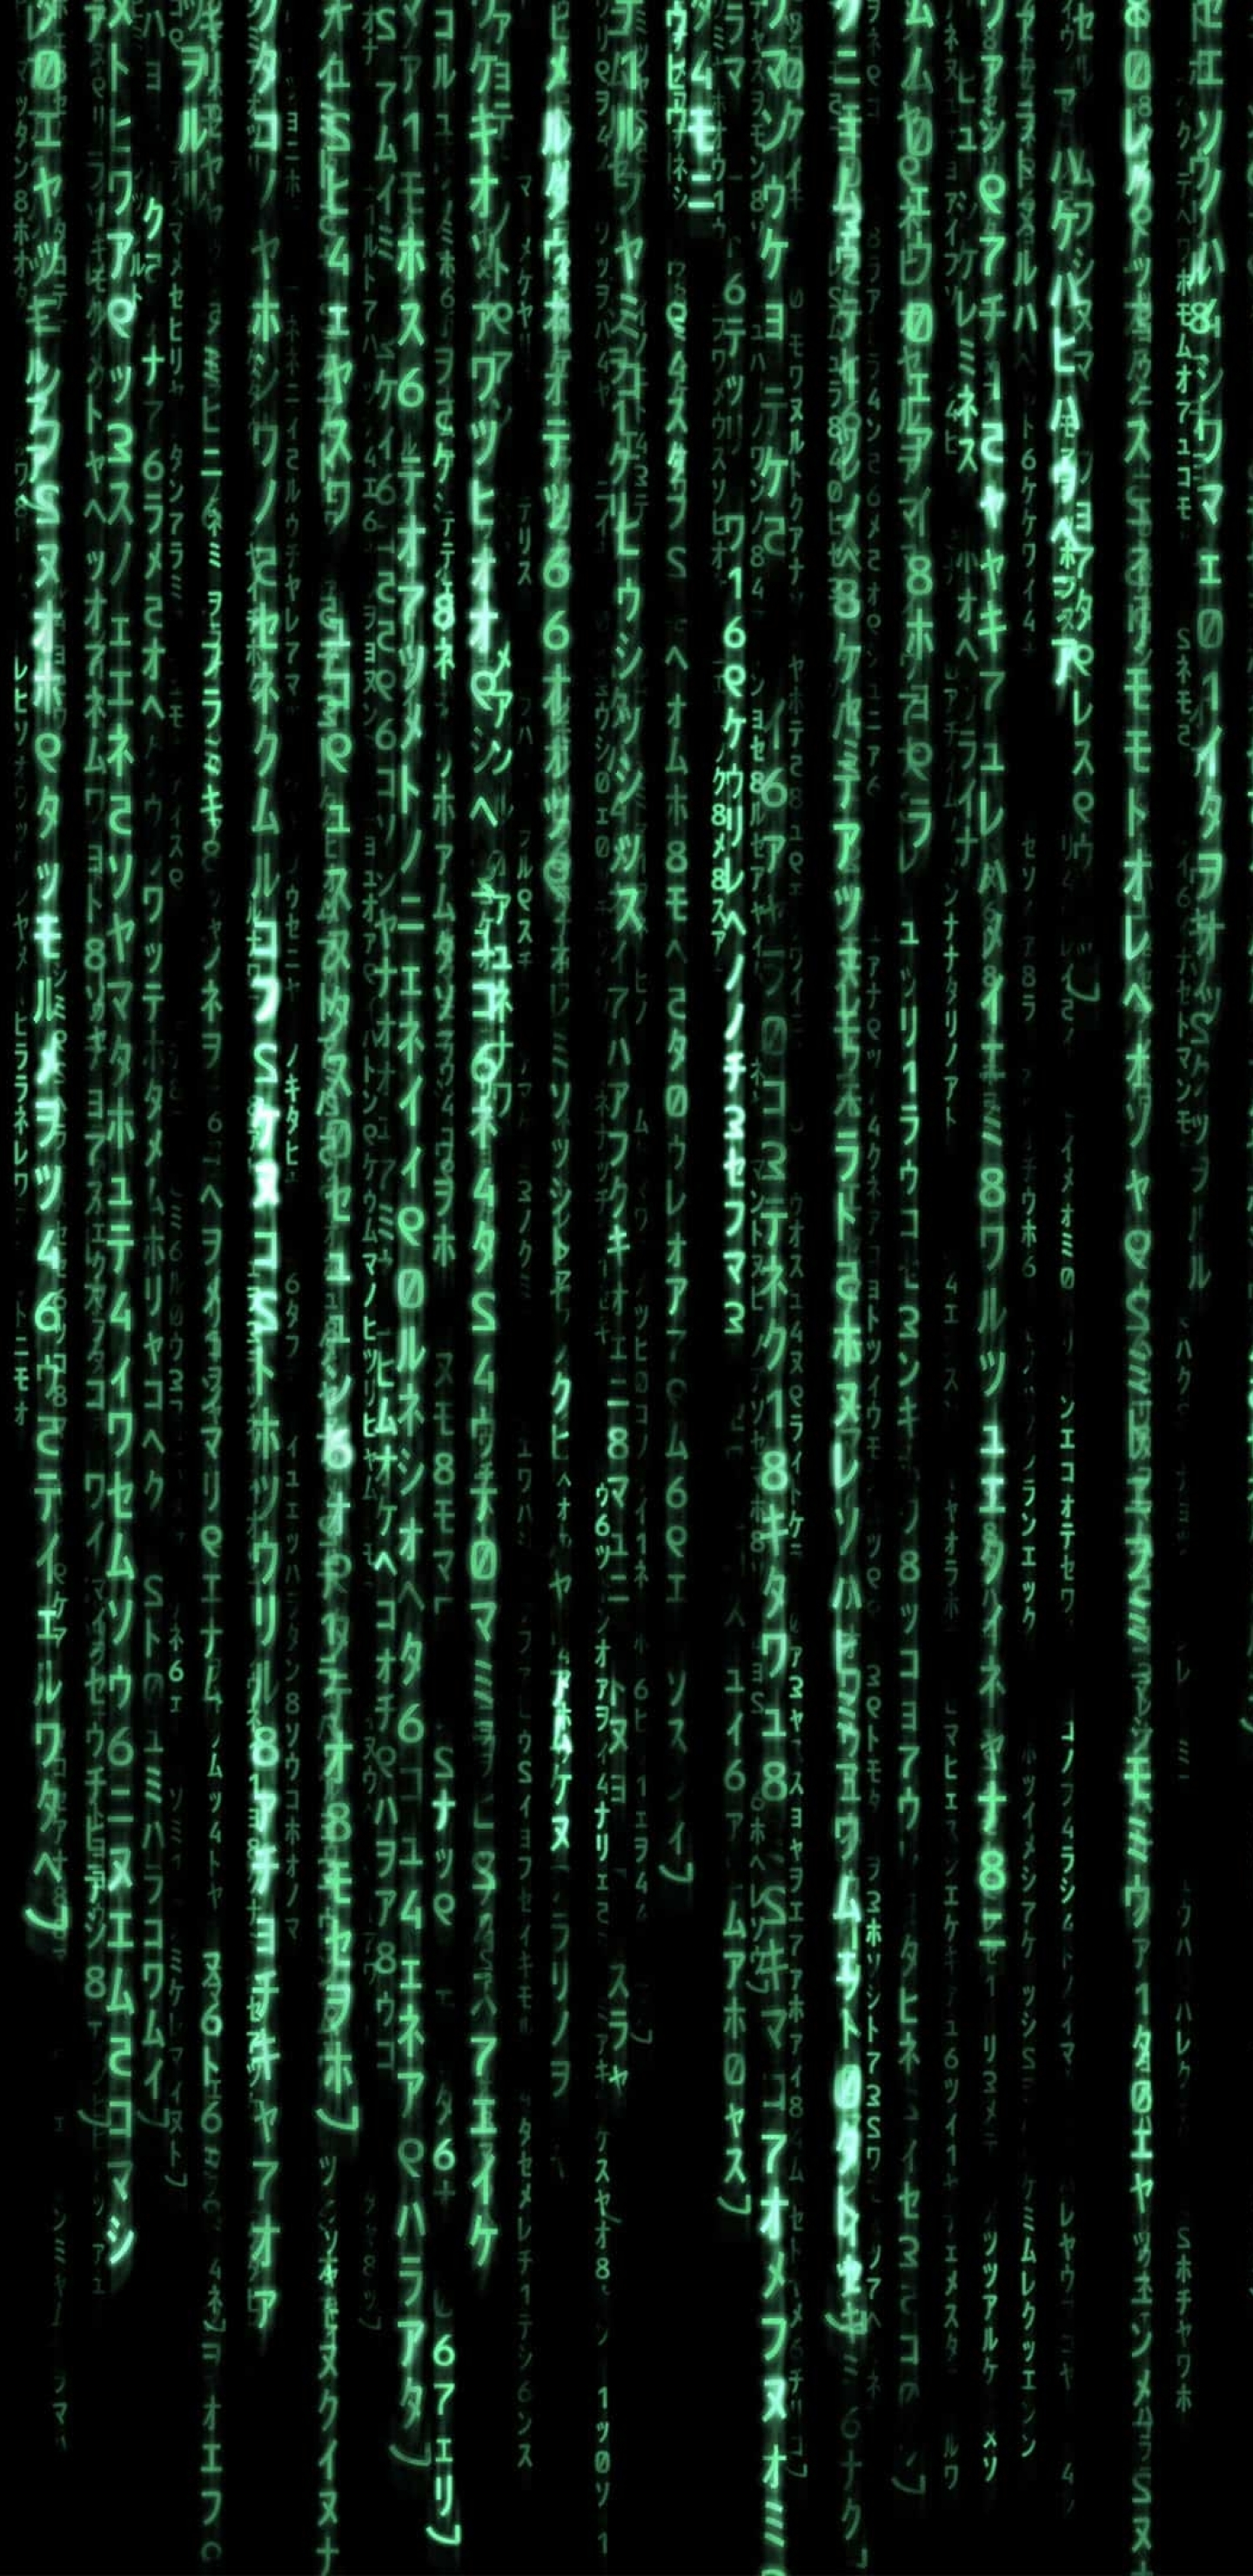 1440x2960 The Matrix 4k Samsung Galaxy Note 9 8 S9 S8 S8 Qhd Wallpaper Hd Movies 4k Wallpapers Images Photos And Background